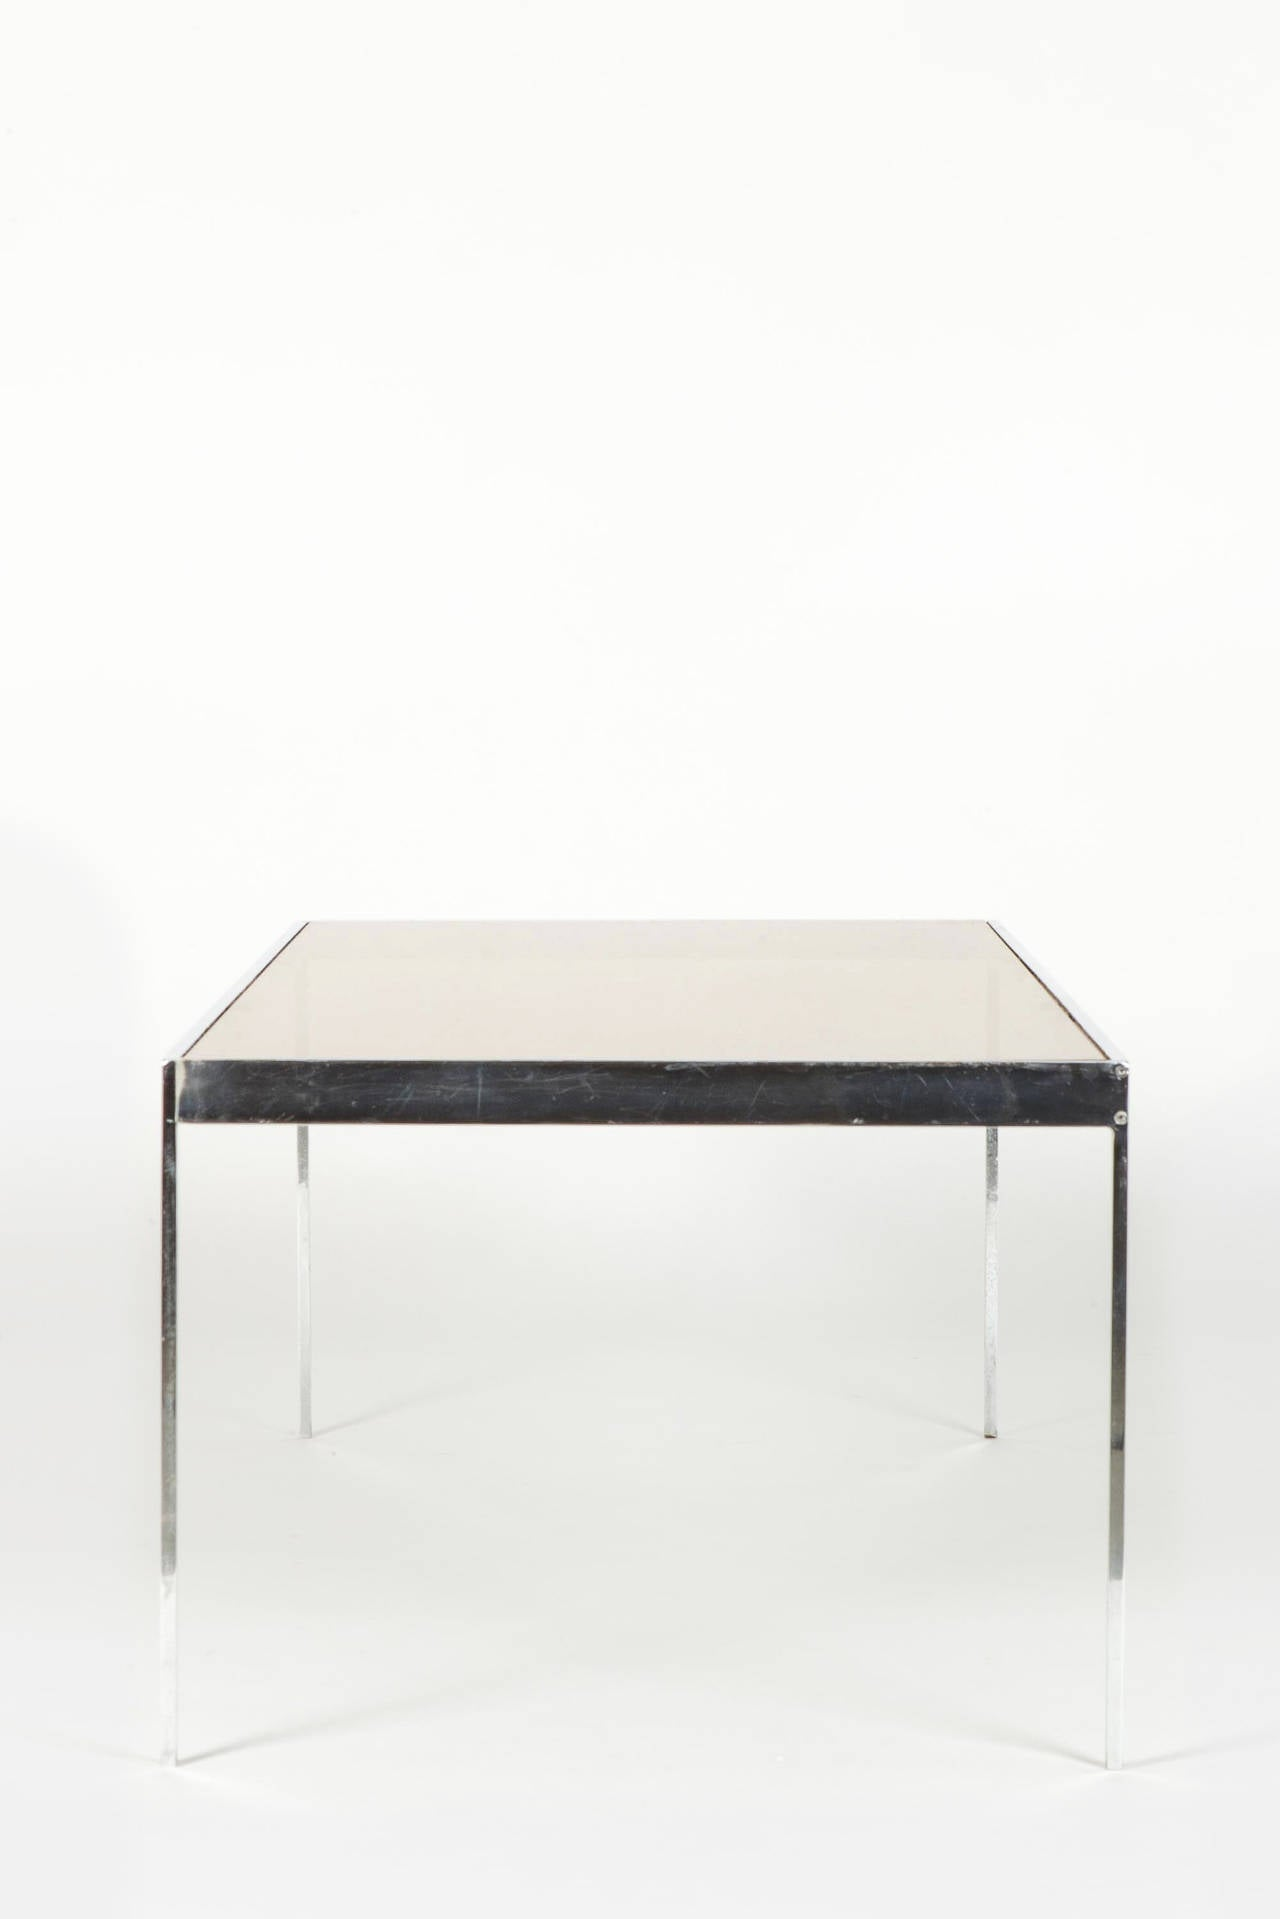 Swiss glass and chrome coffee table by dieter waeckerlin at 1stdibs swiss glass and chrome coffee table by dieter waeckerlin 3 geotapseo Gallery